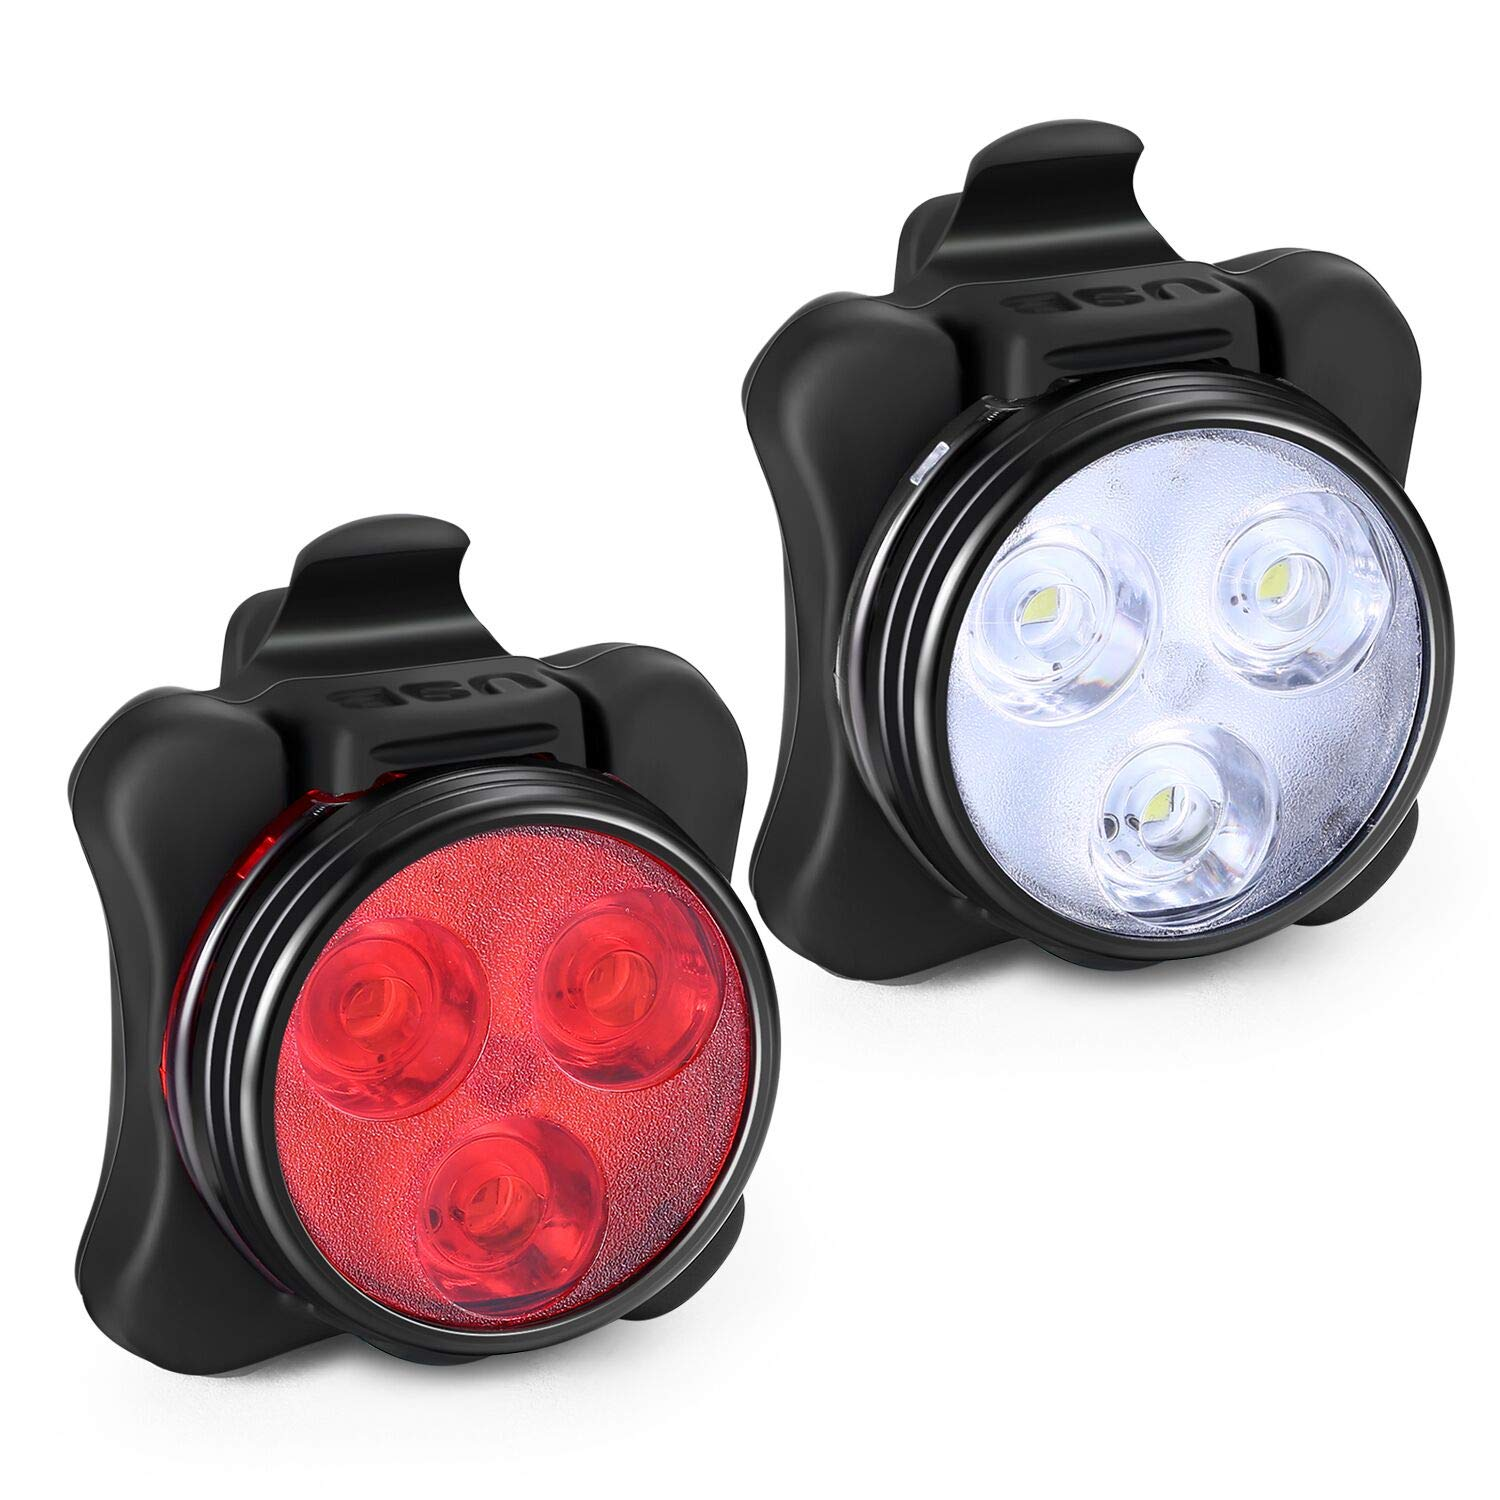 Coukou Rechargeable LED Bike Lights Set - Headlight Taillight Combinations LED Bicycle Light Set (650mah Lithium Battery, 4 Light Mode Options, 2 USB cables)